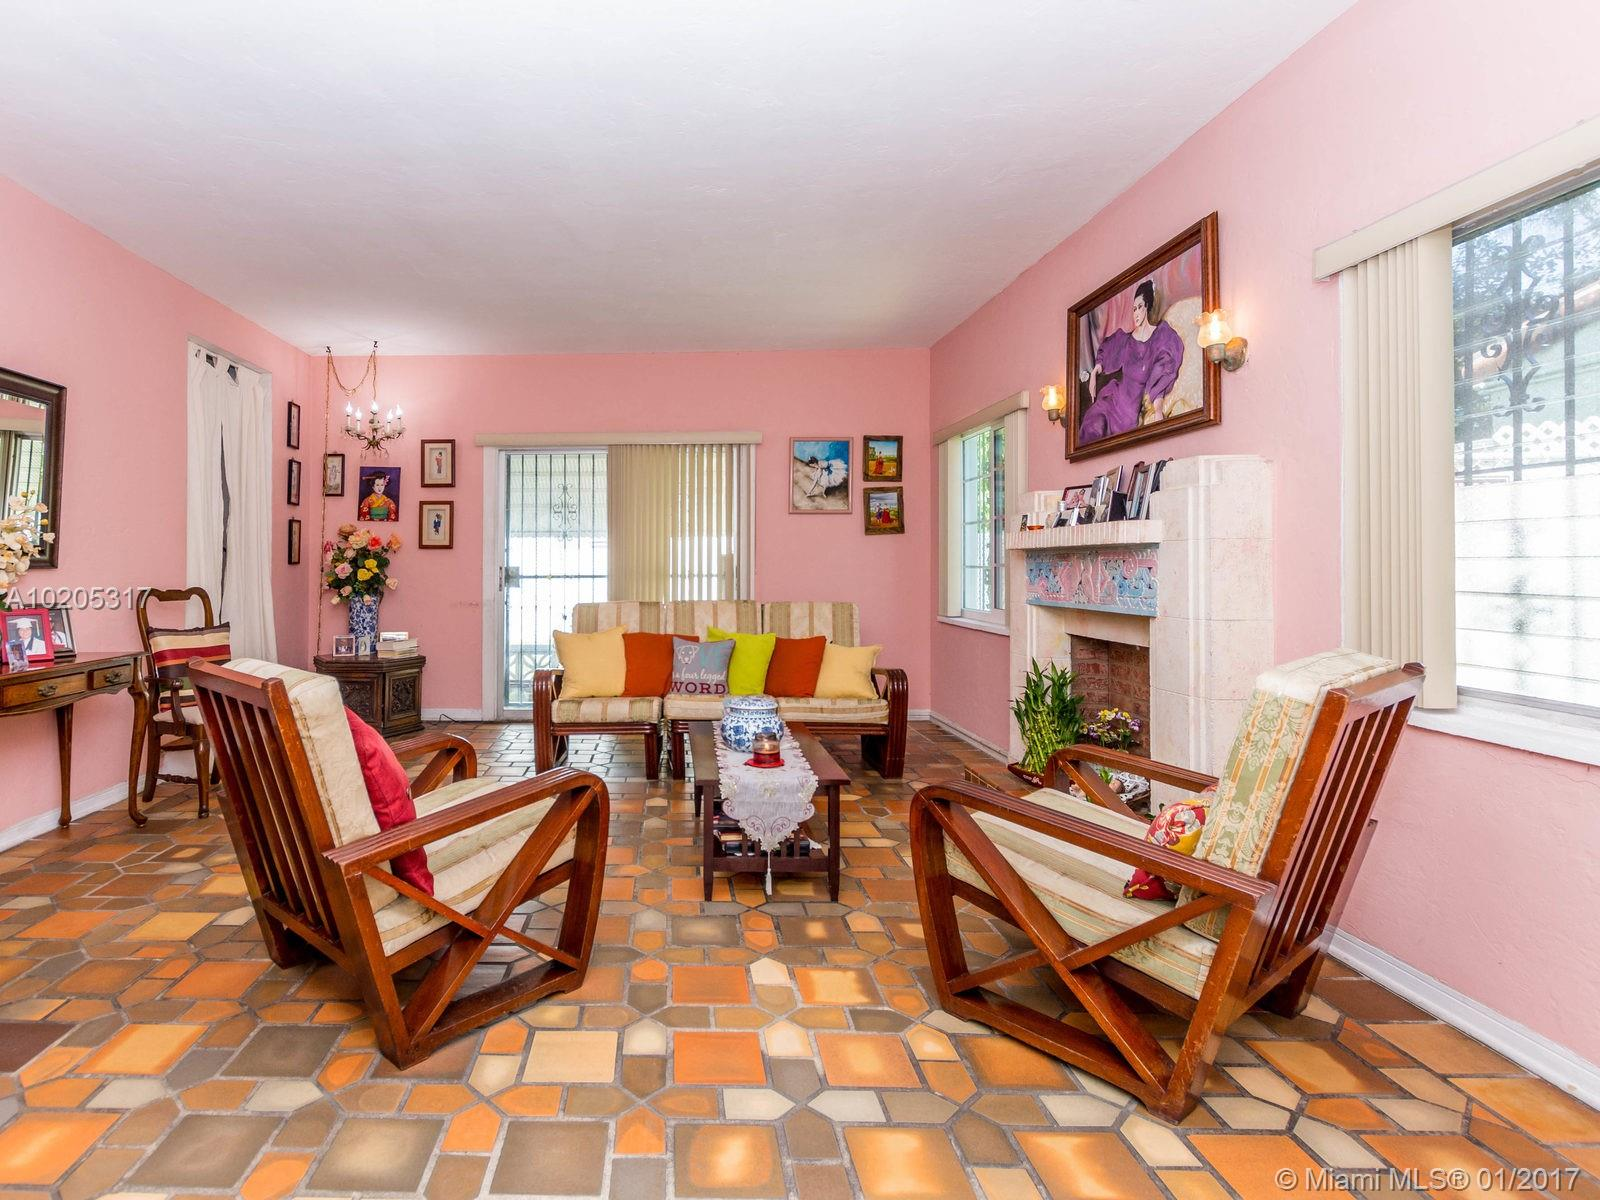 843 Espanola Way, Miami Beach , FL 33139